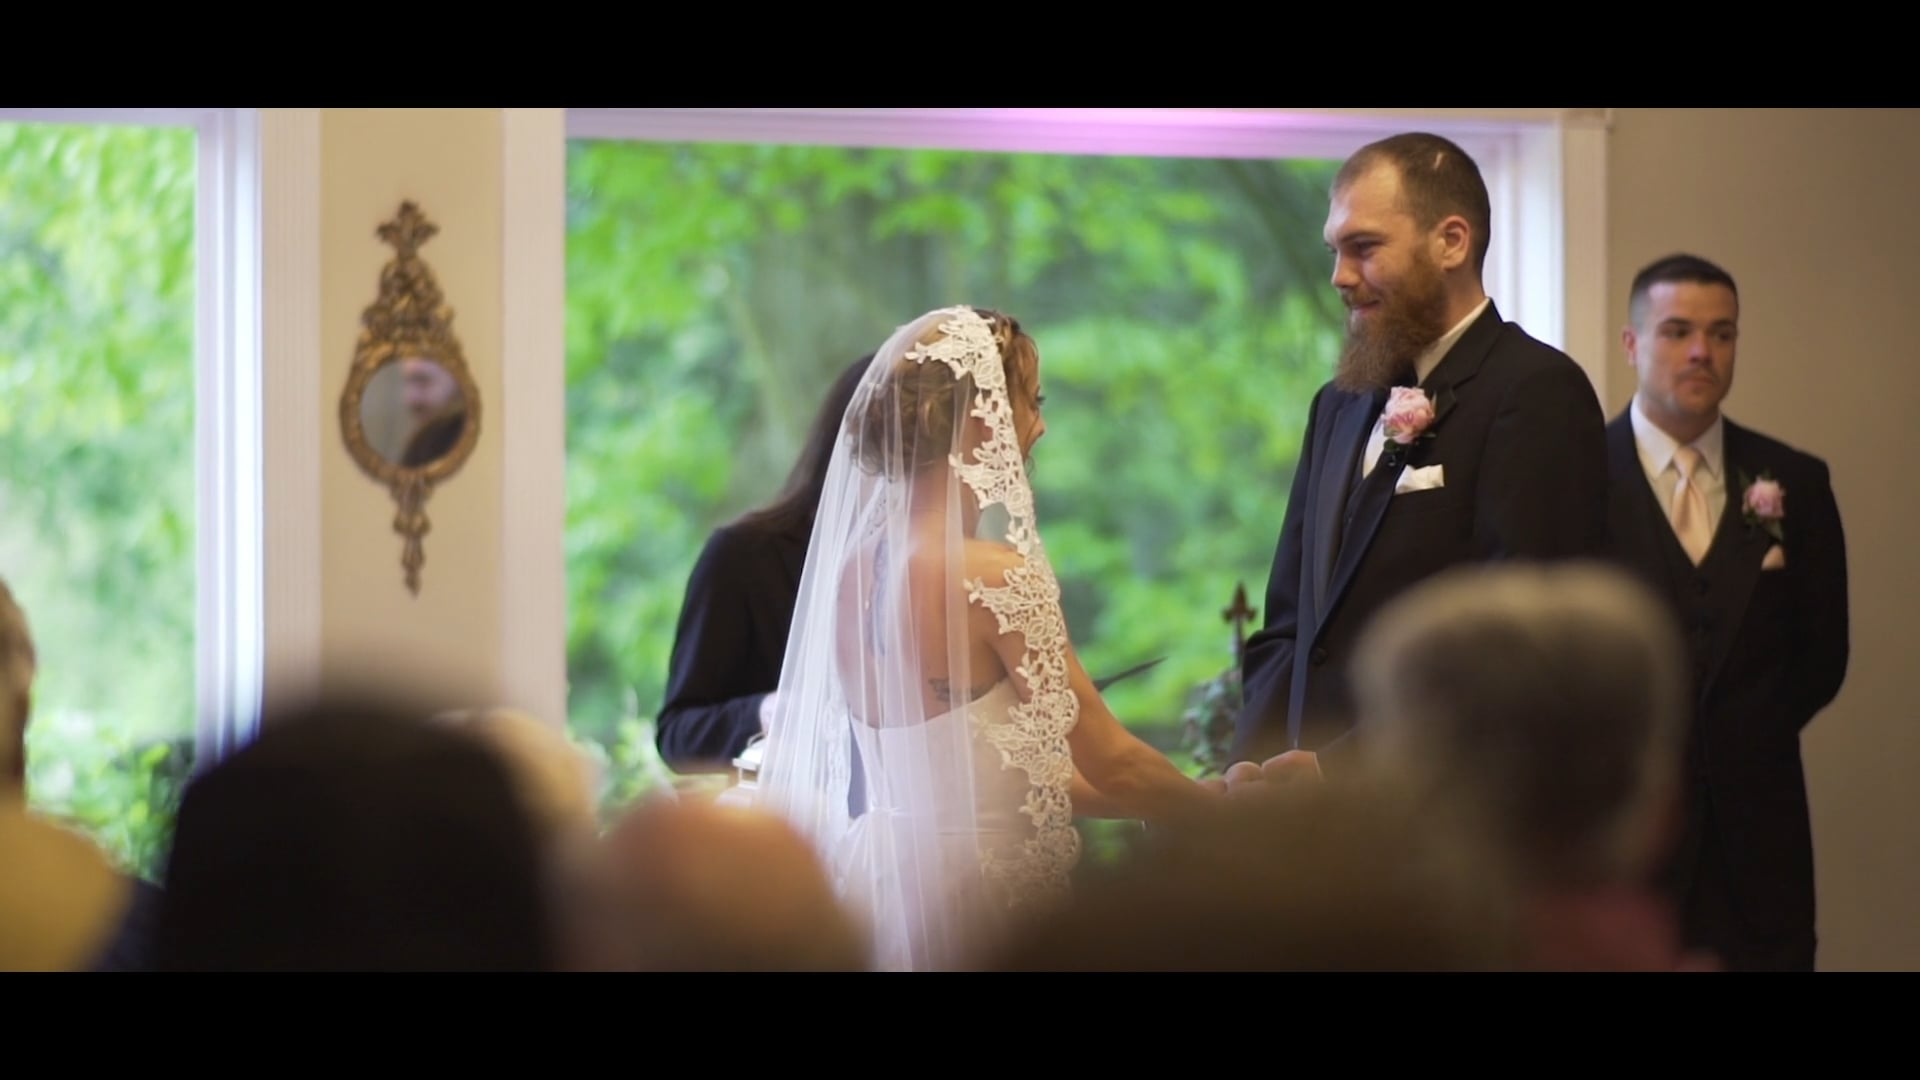 Leah & Dave | Our Love Story